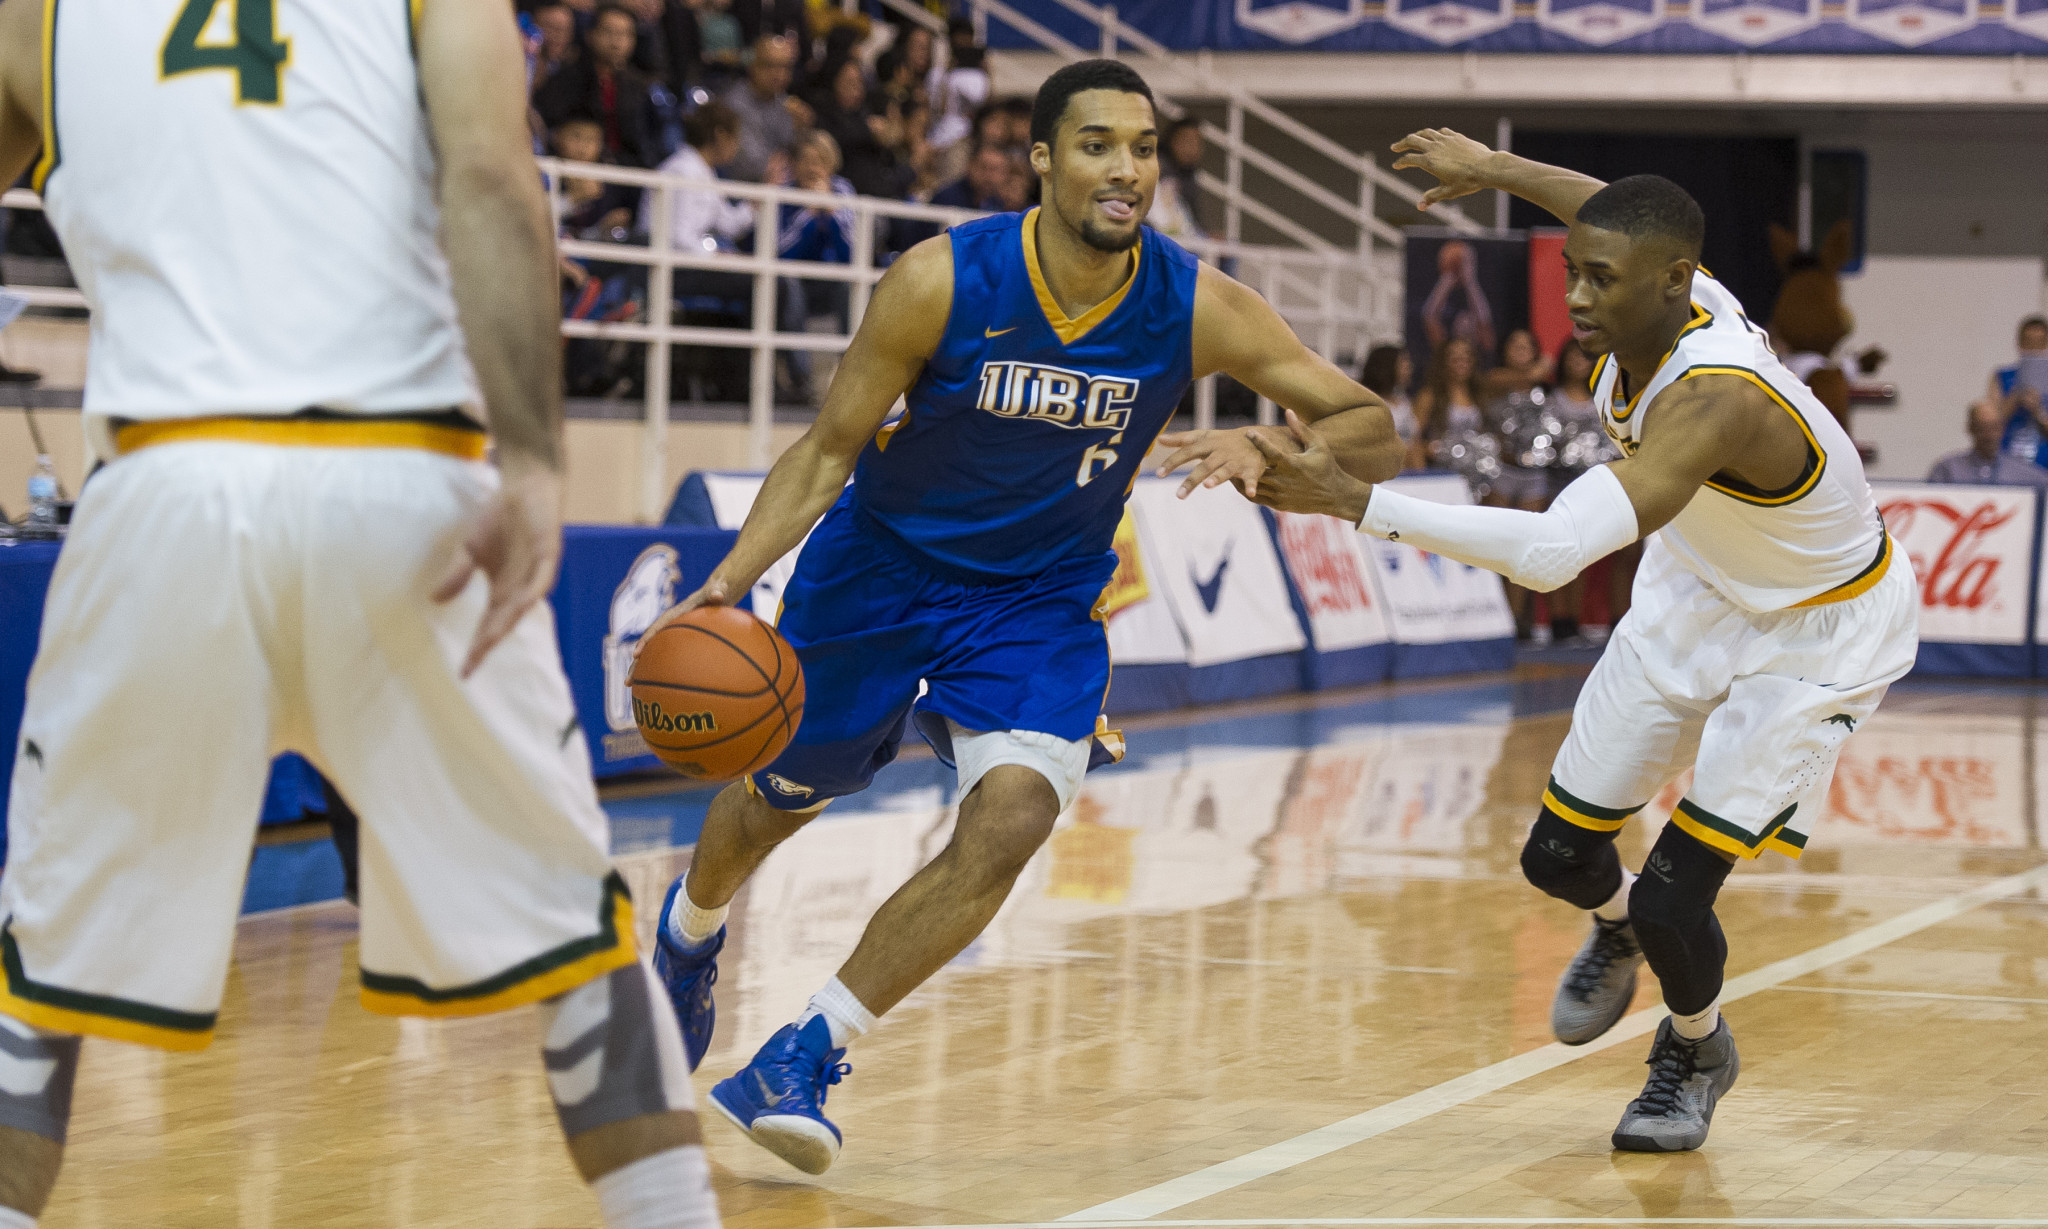 ubc-basketball1